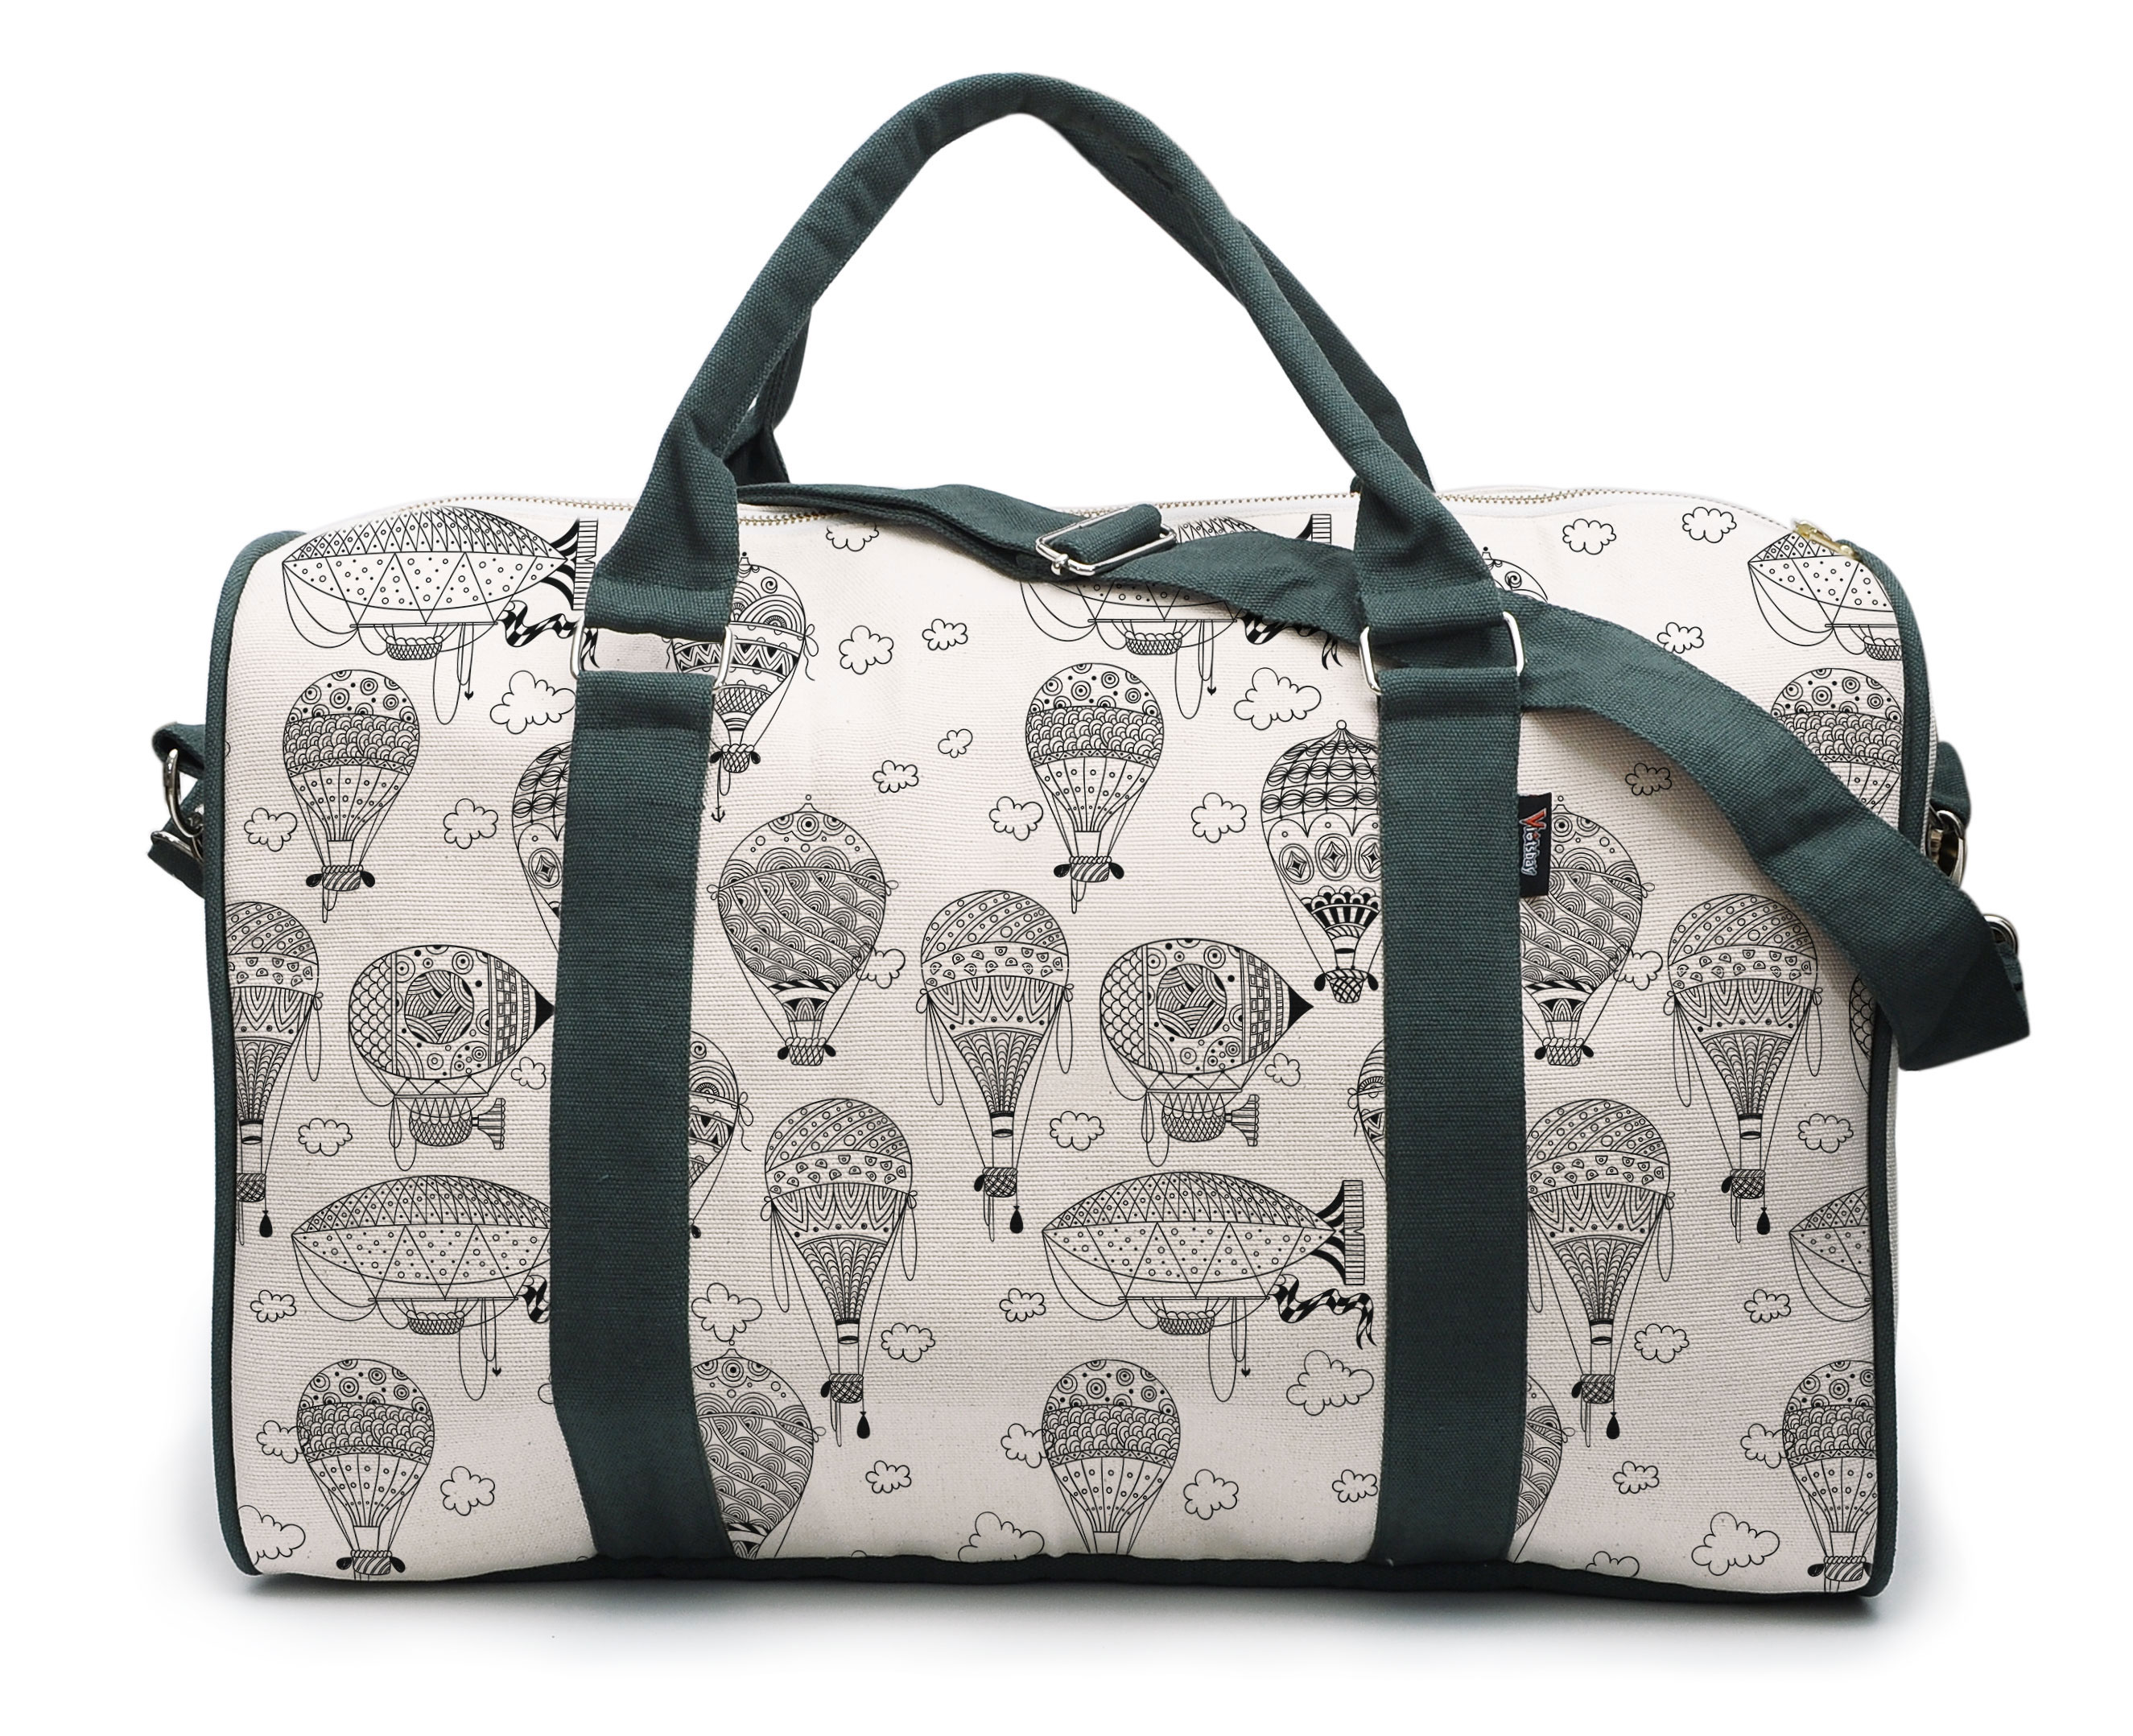 Watercolor Balloons Printed Oversized Canvas Duffle Luggage Travel Bag WAS_42 by Vietsbay